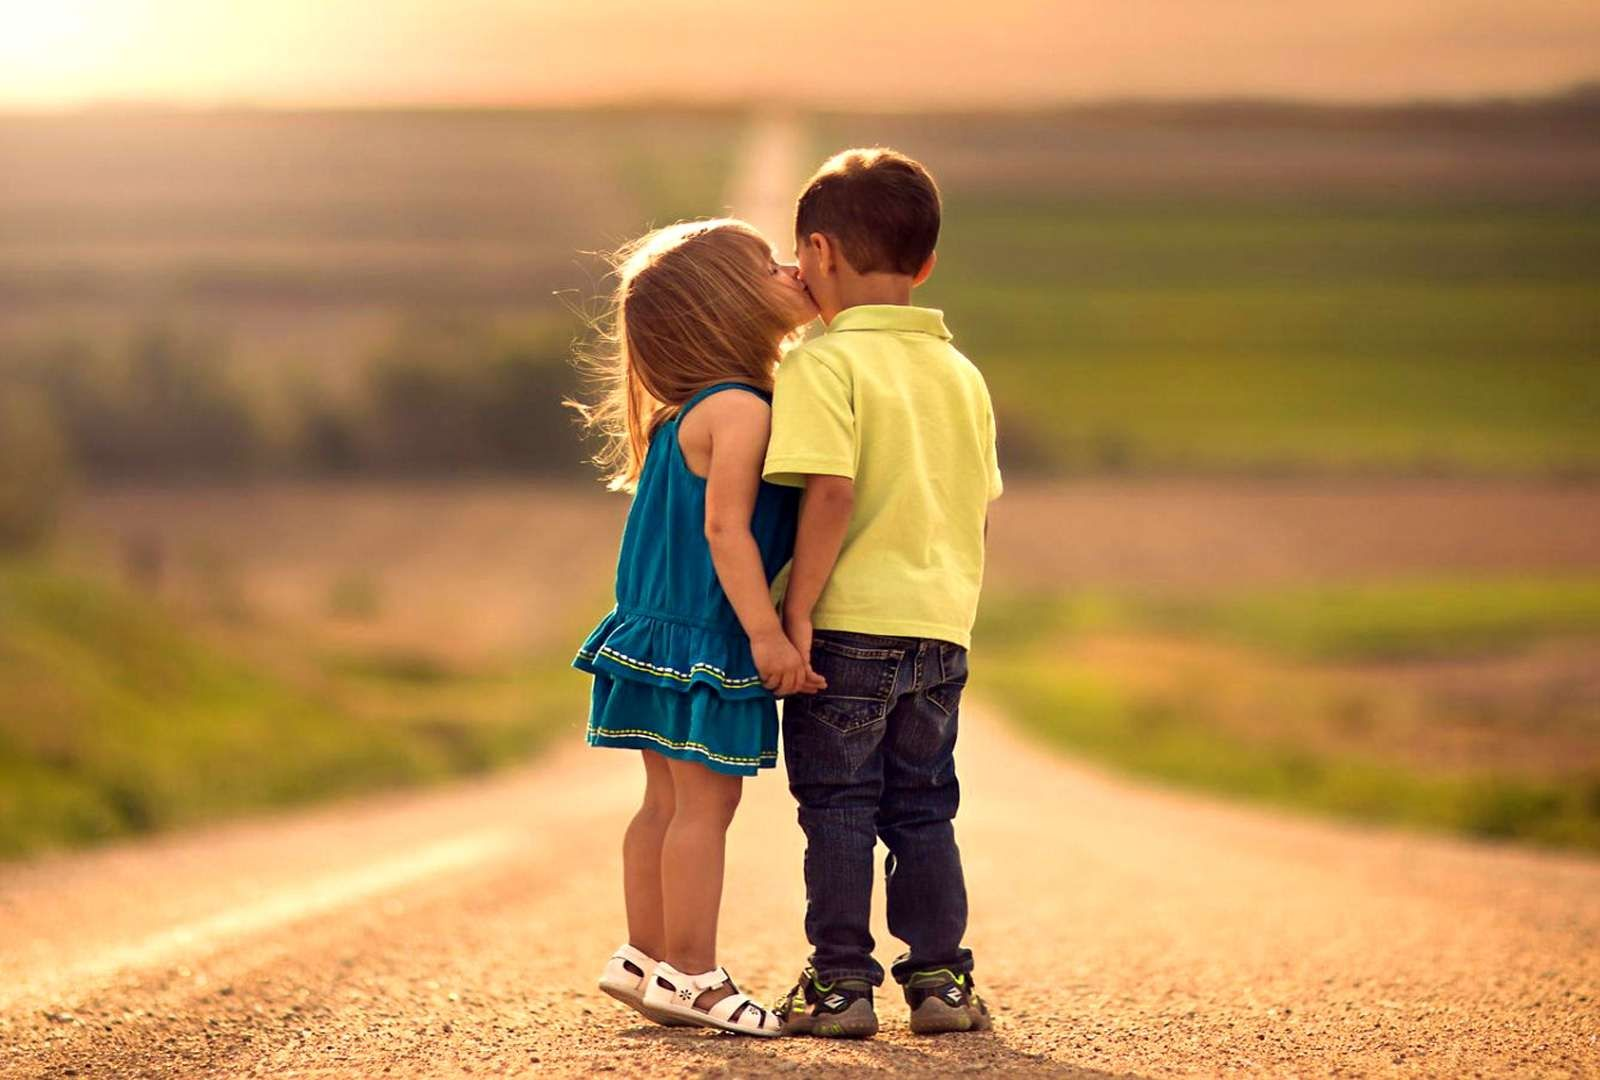 Babies Love couple Wallpaper : Best download images of love hug - Romantic Hug Wallpaper Hd Best collection Of Love couples ...